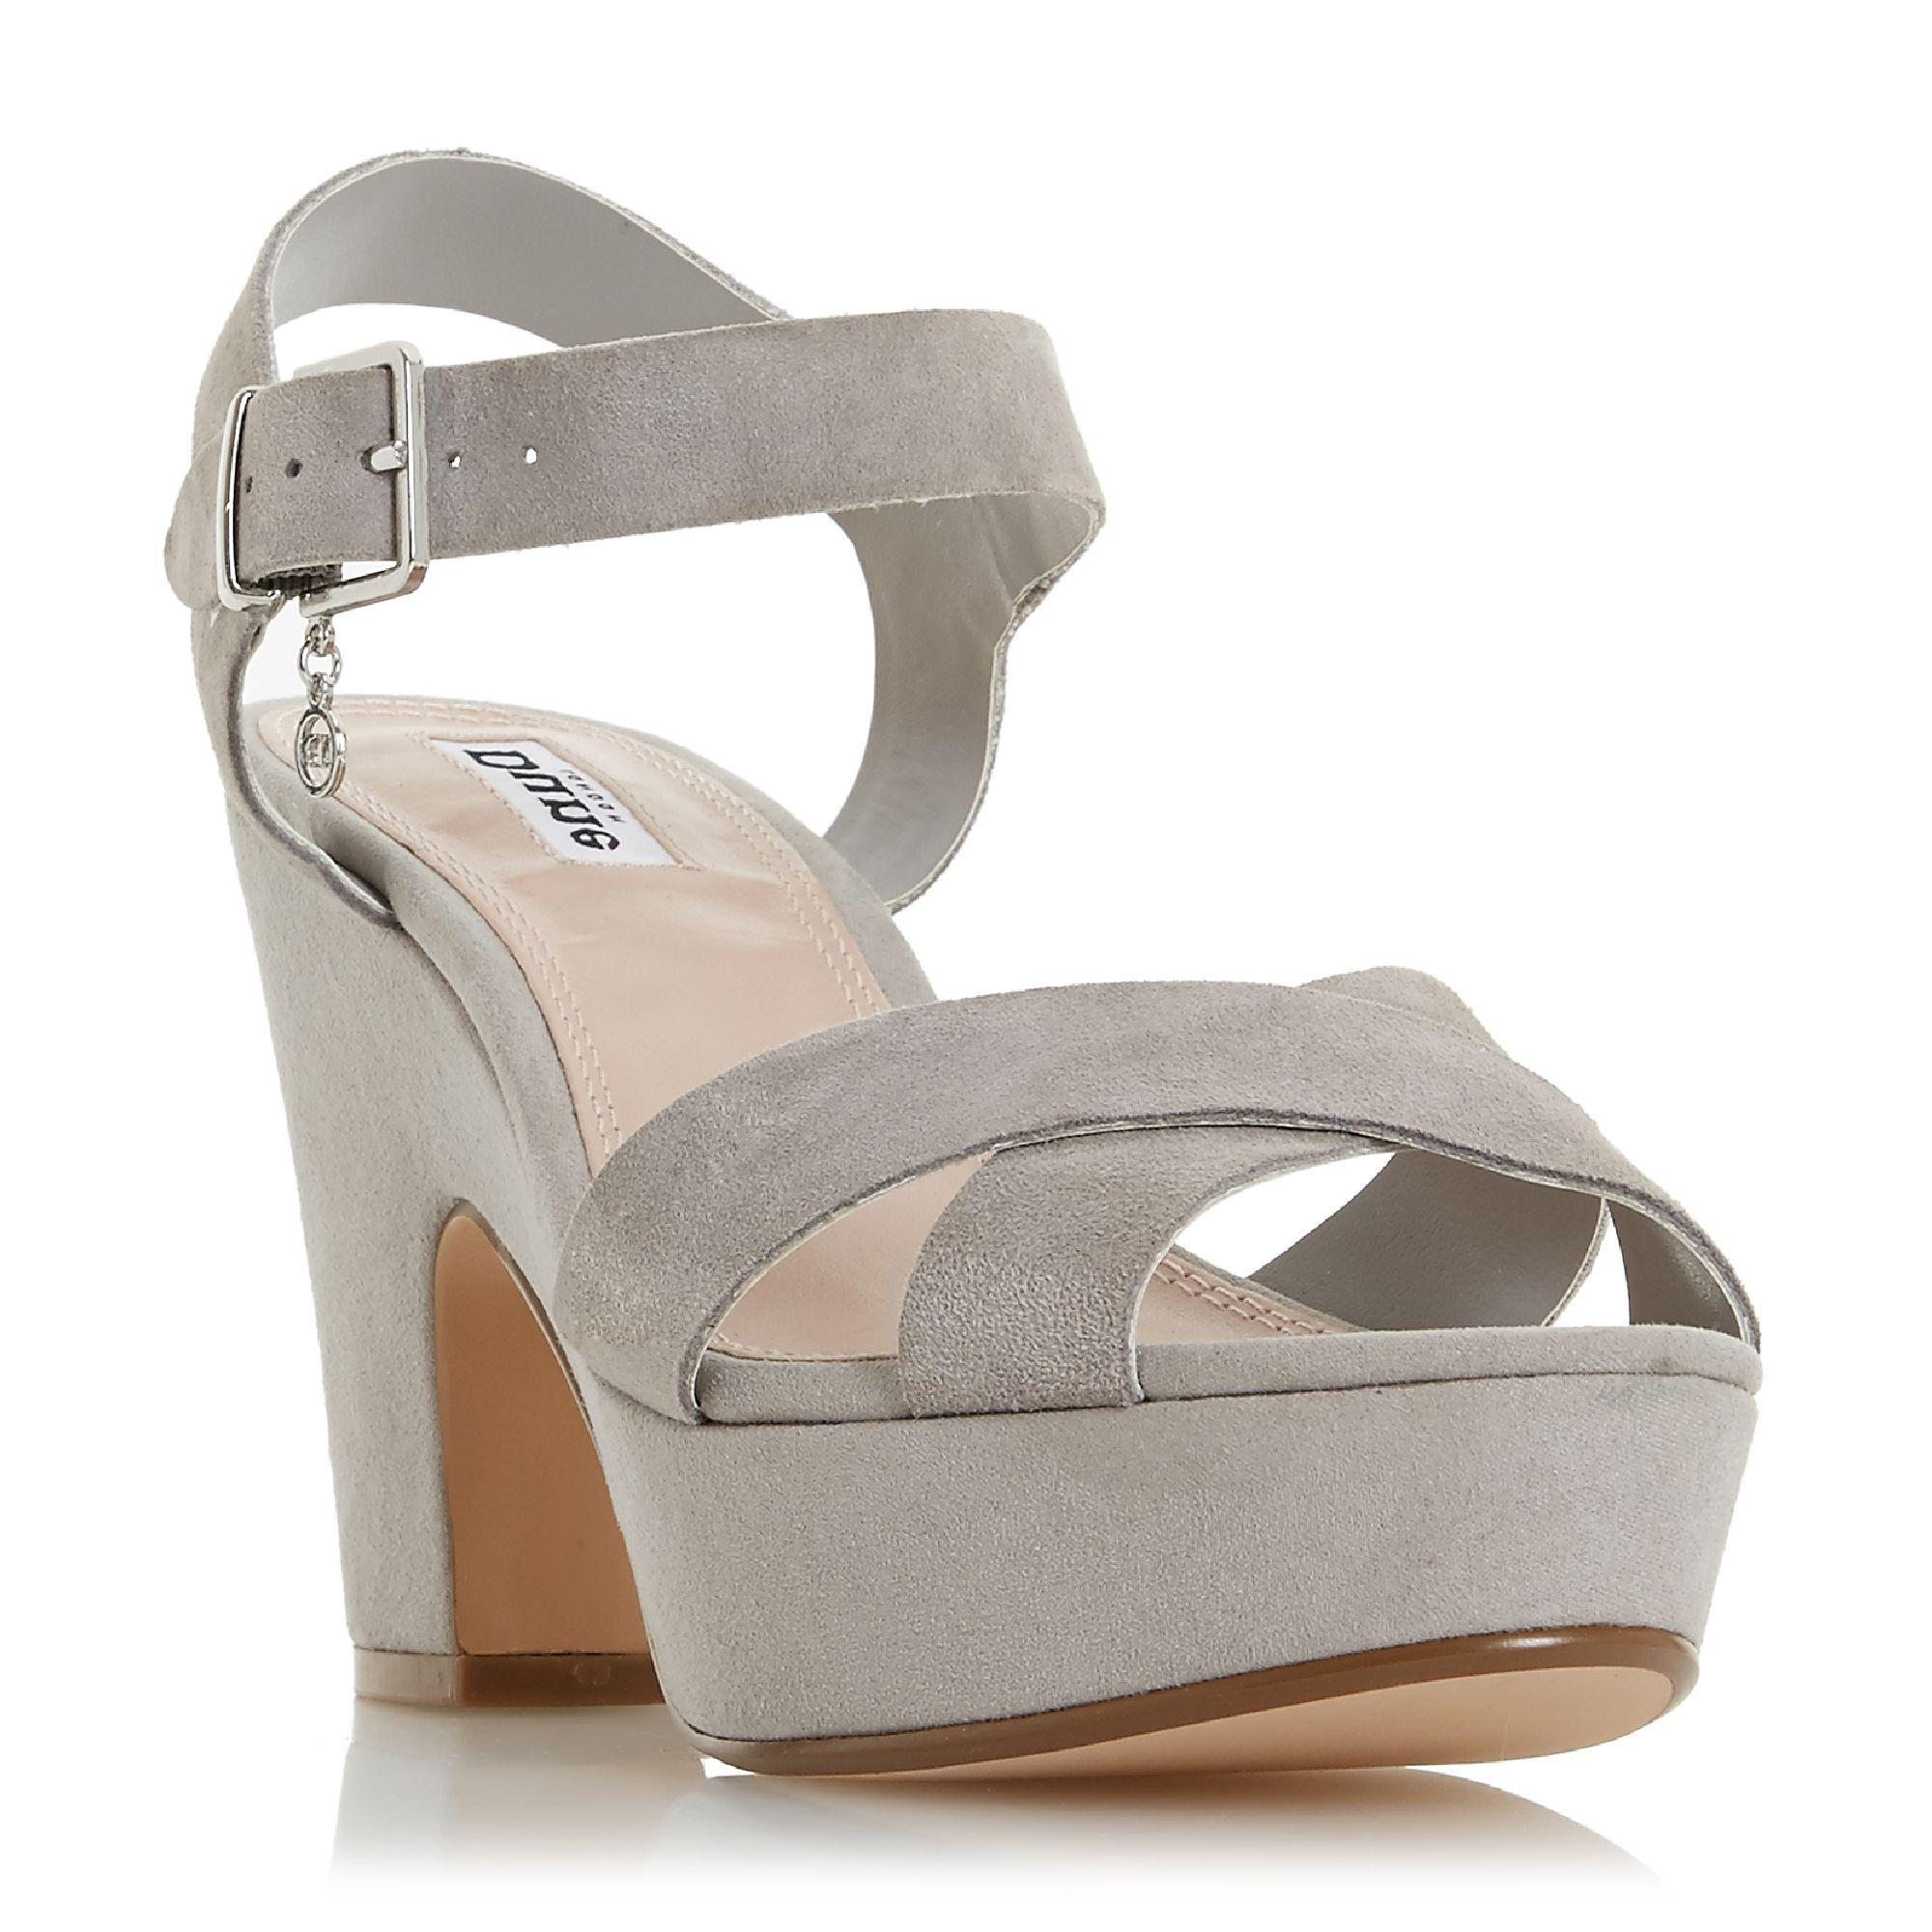 a918f56f13a Dune Grey Suede  iyla  High Block Heel Ankle Strap Sandals in Gray ...